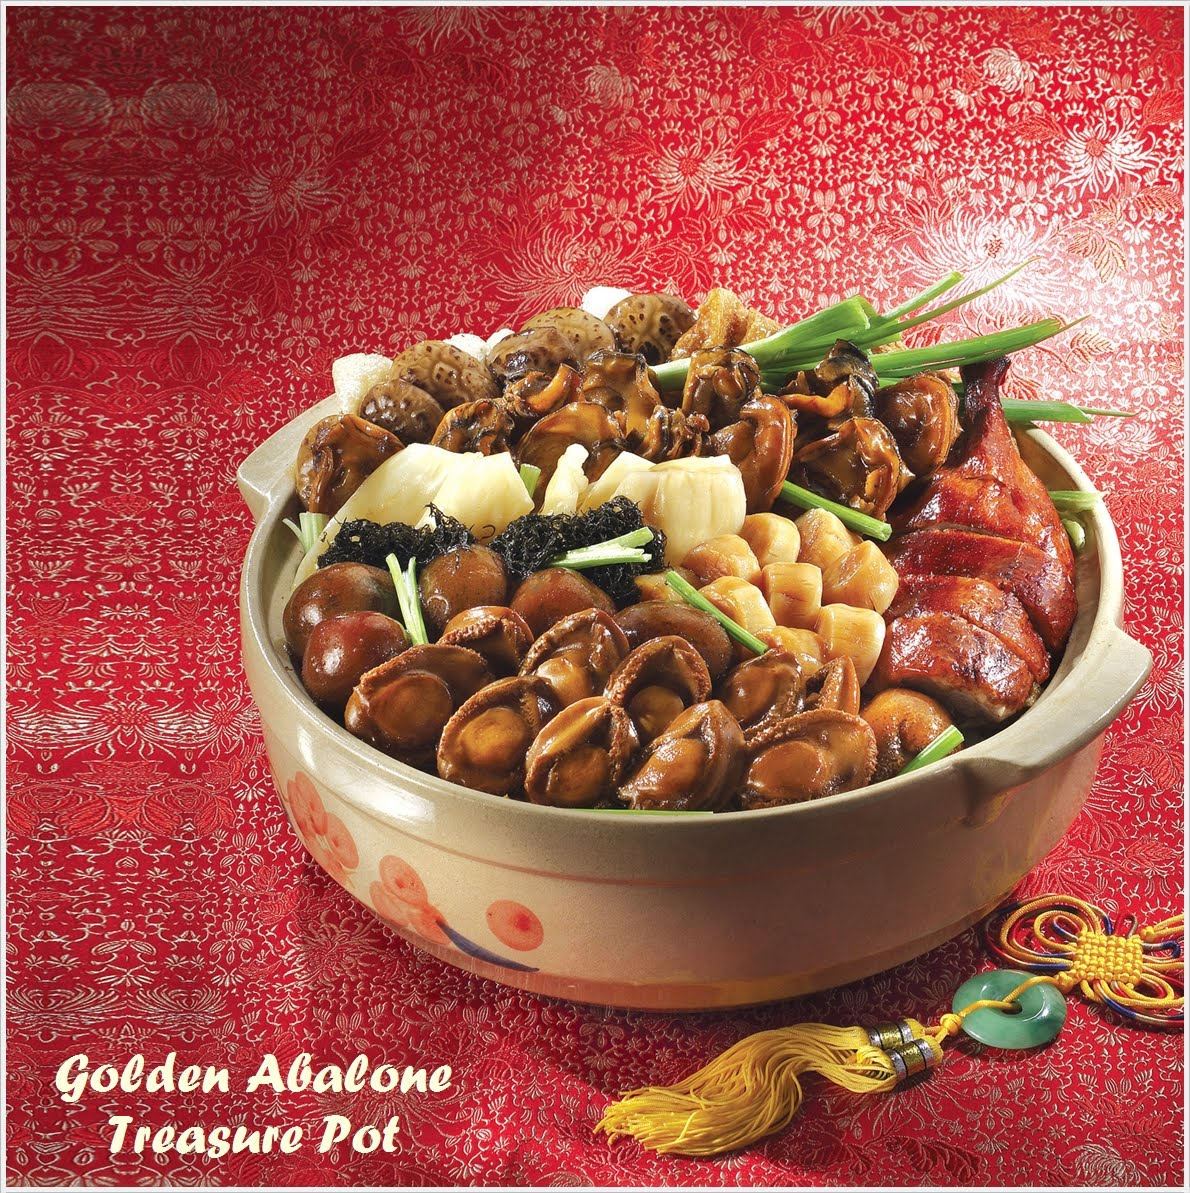 Cuisine paradise singapore food blog recipes reviews and other than pastries and cakes from crystal jade my bread there are other chinese new year proudcts such as peng cai yu sheng forumfinder Choice Image